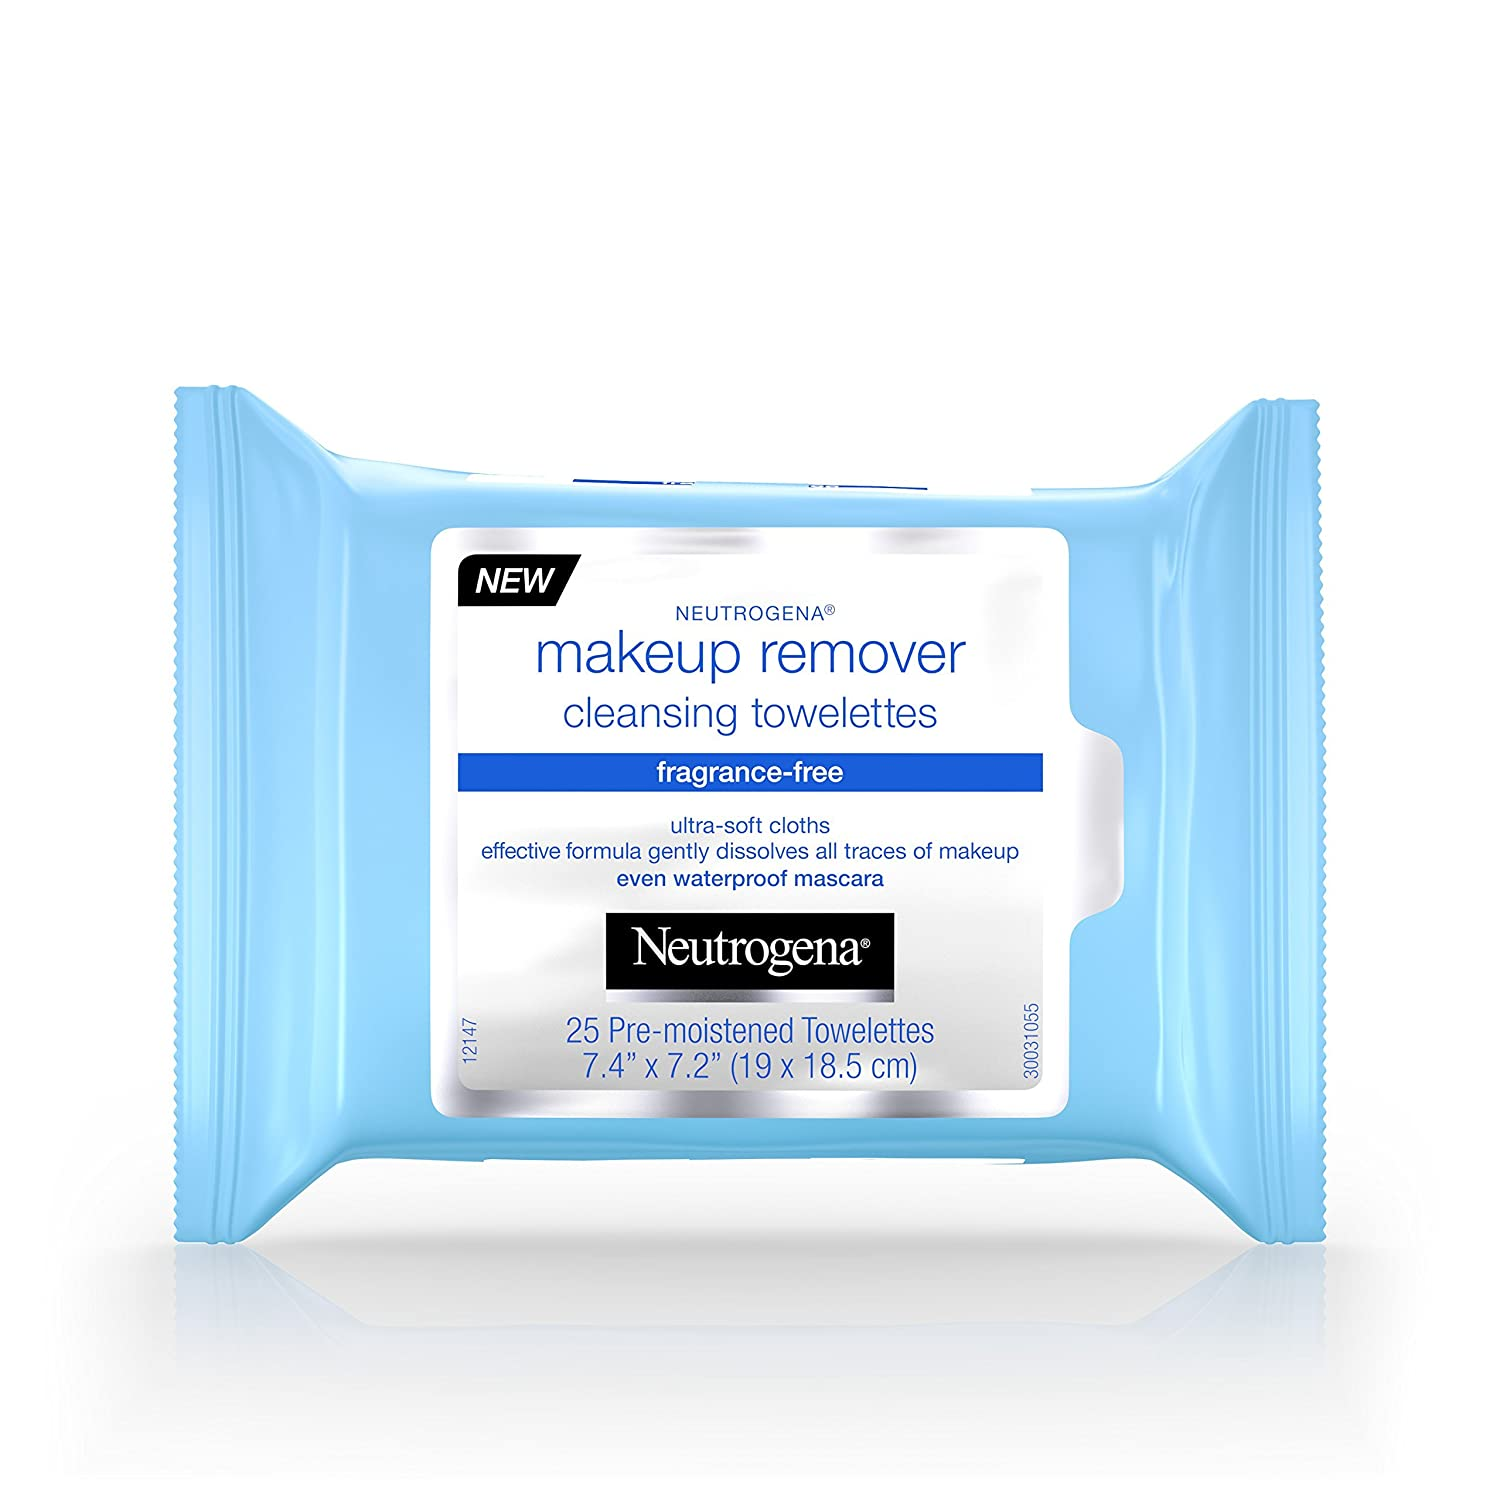 Neutrogena Cleansing Makeup Remover Towelettes Jill Beauty Lip Matte 09 Sweet Peony Fragrance Free 25 Count